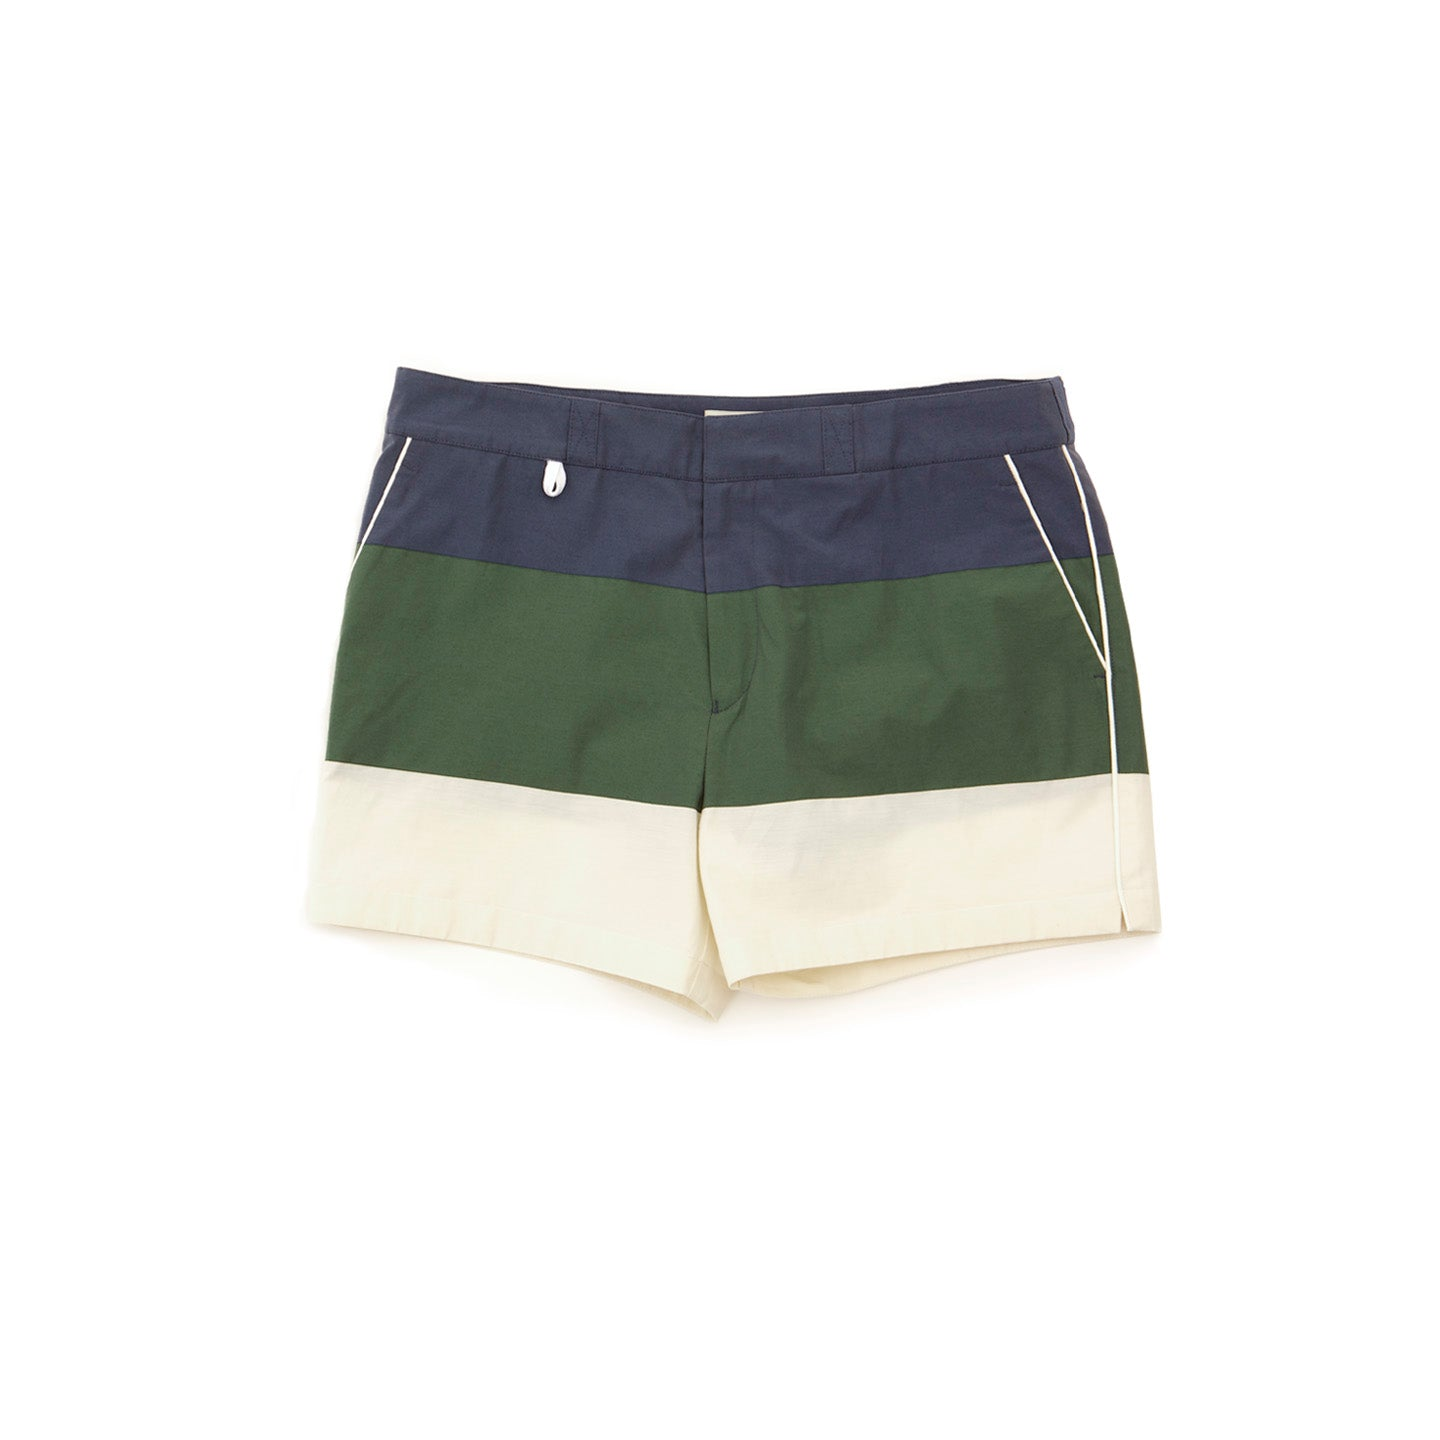 Blue, green, and white bathing trunks